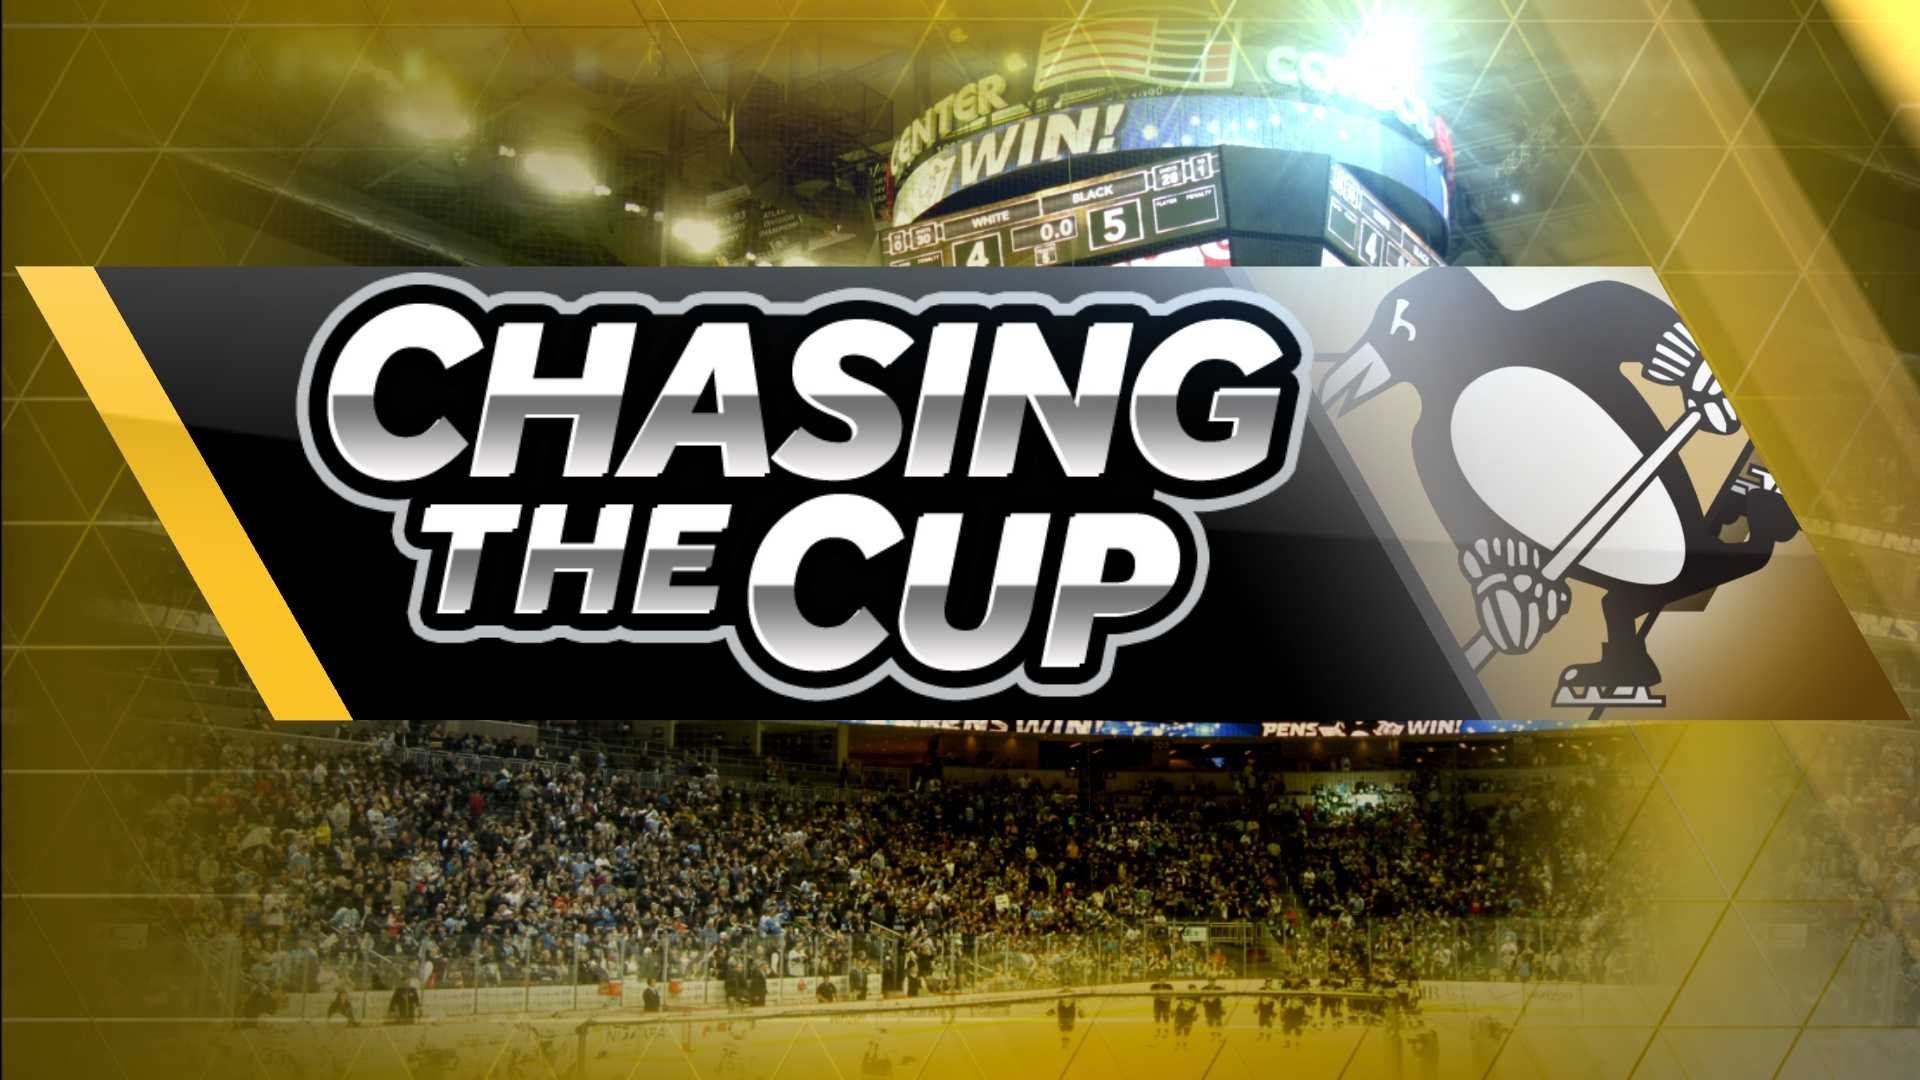 Penguins - Chasing the Cup.jpg